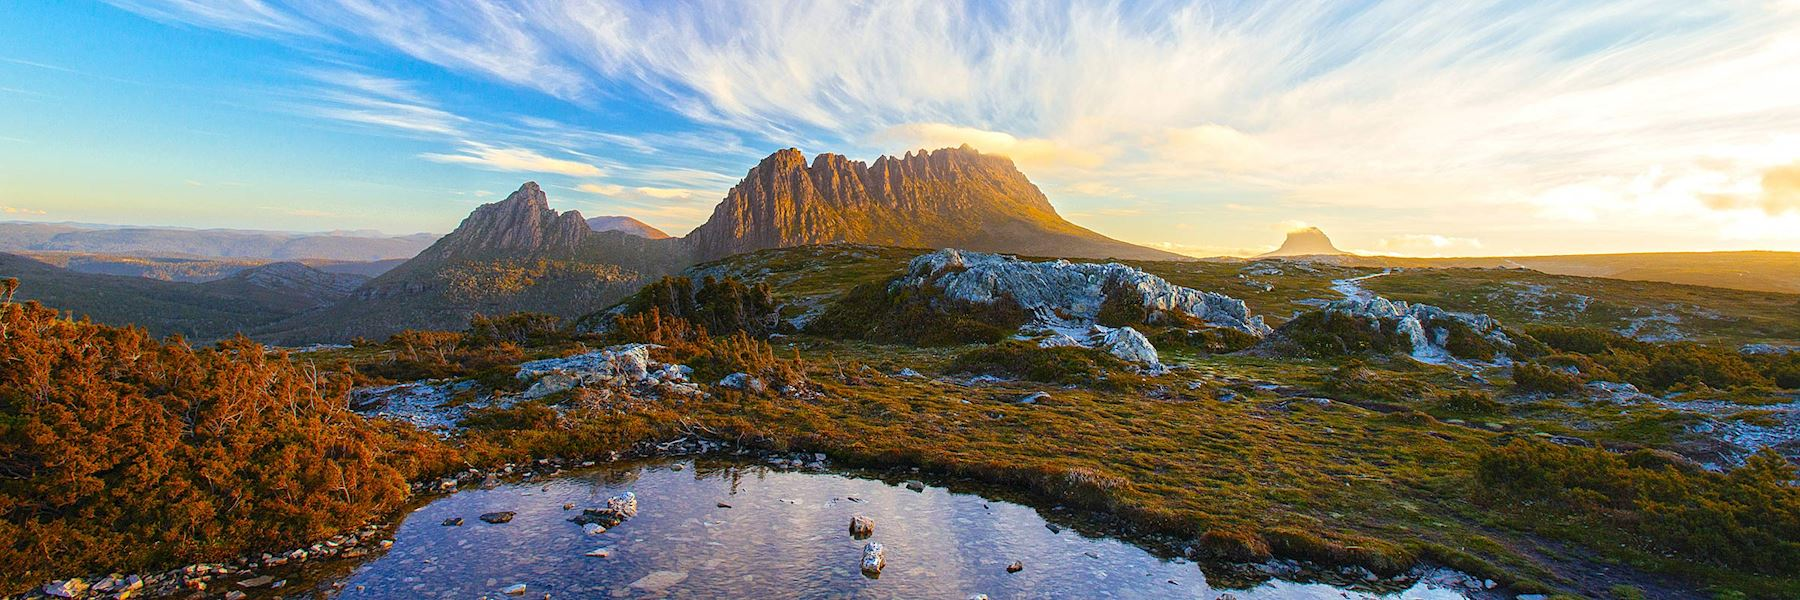 Visit Cradle Mountain-Lake St Clair National Park, Australia